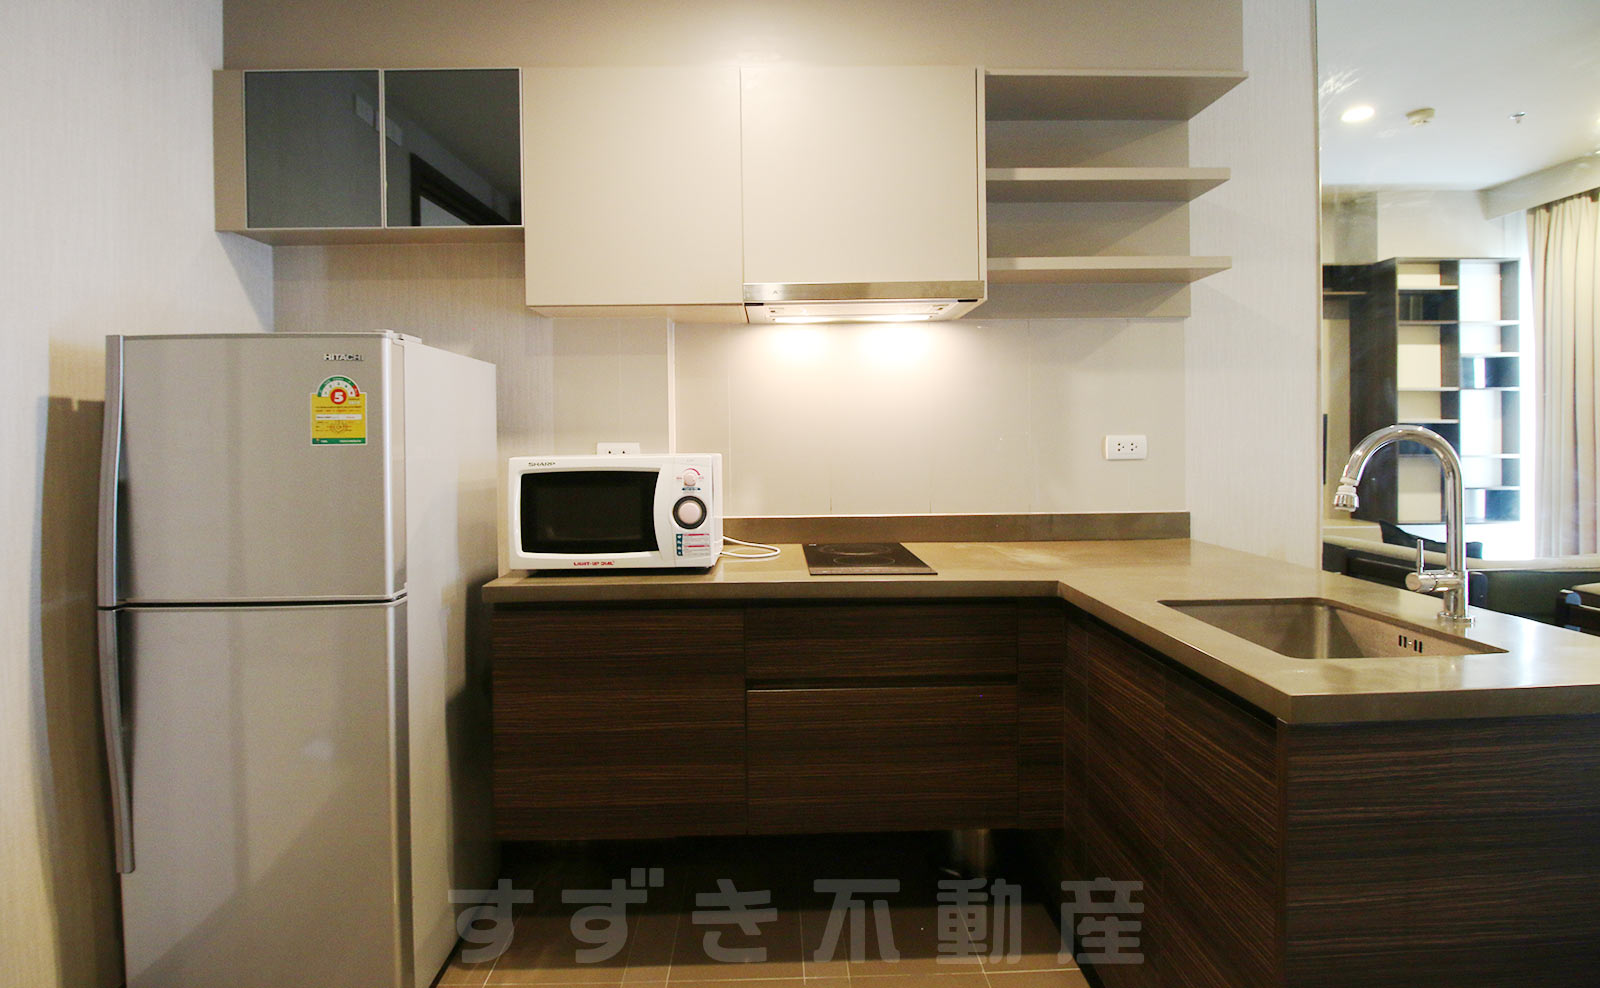 Teal Sathorn-Taksin:1Bed Room Photos No.5